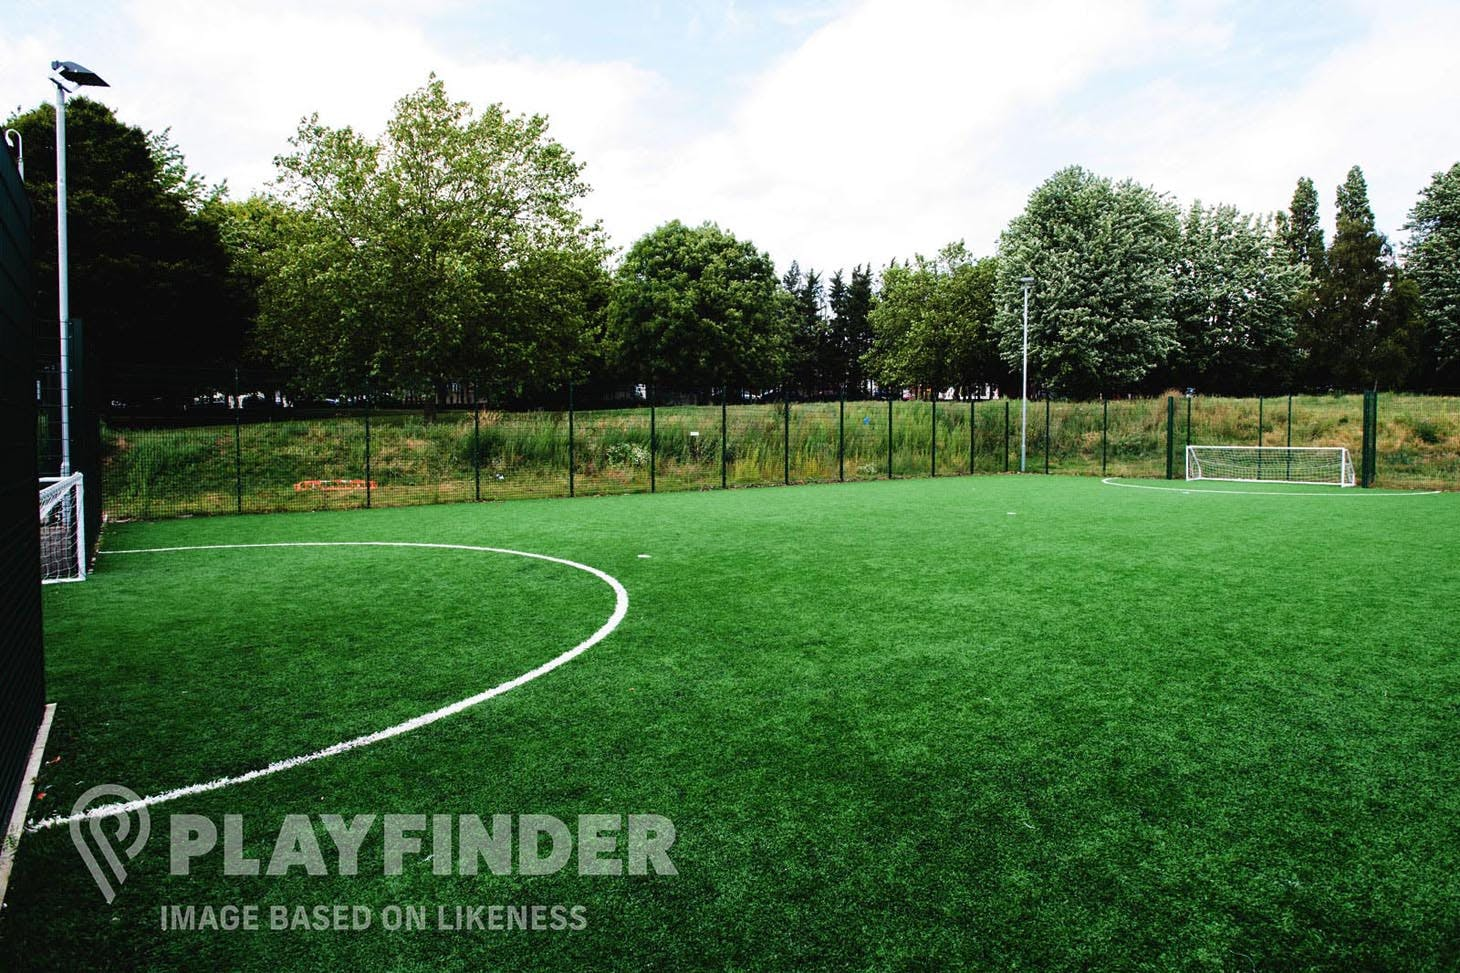 Goals Ipswich 5 a side | 3G Astroturf football pitch